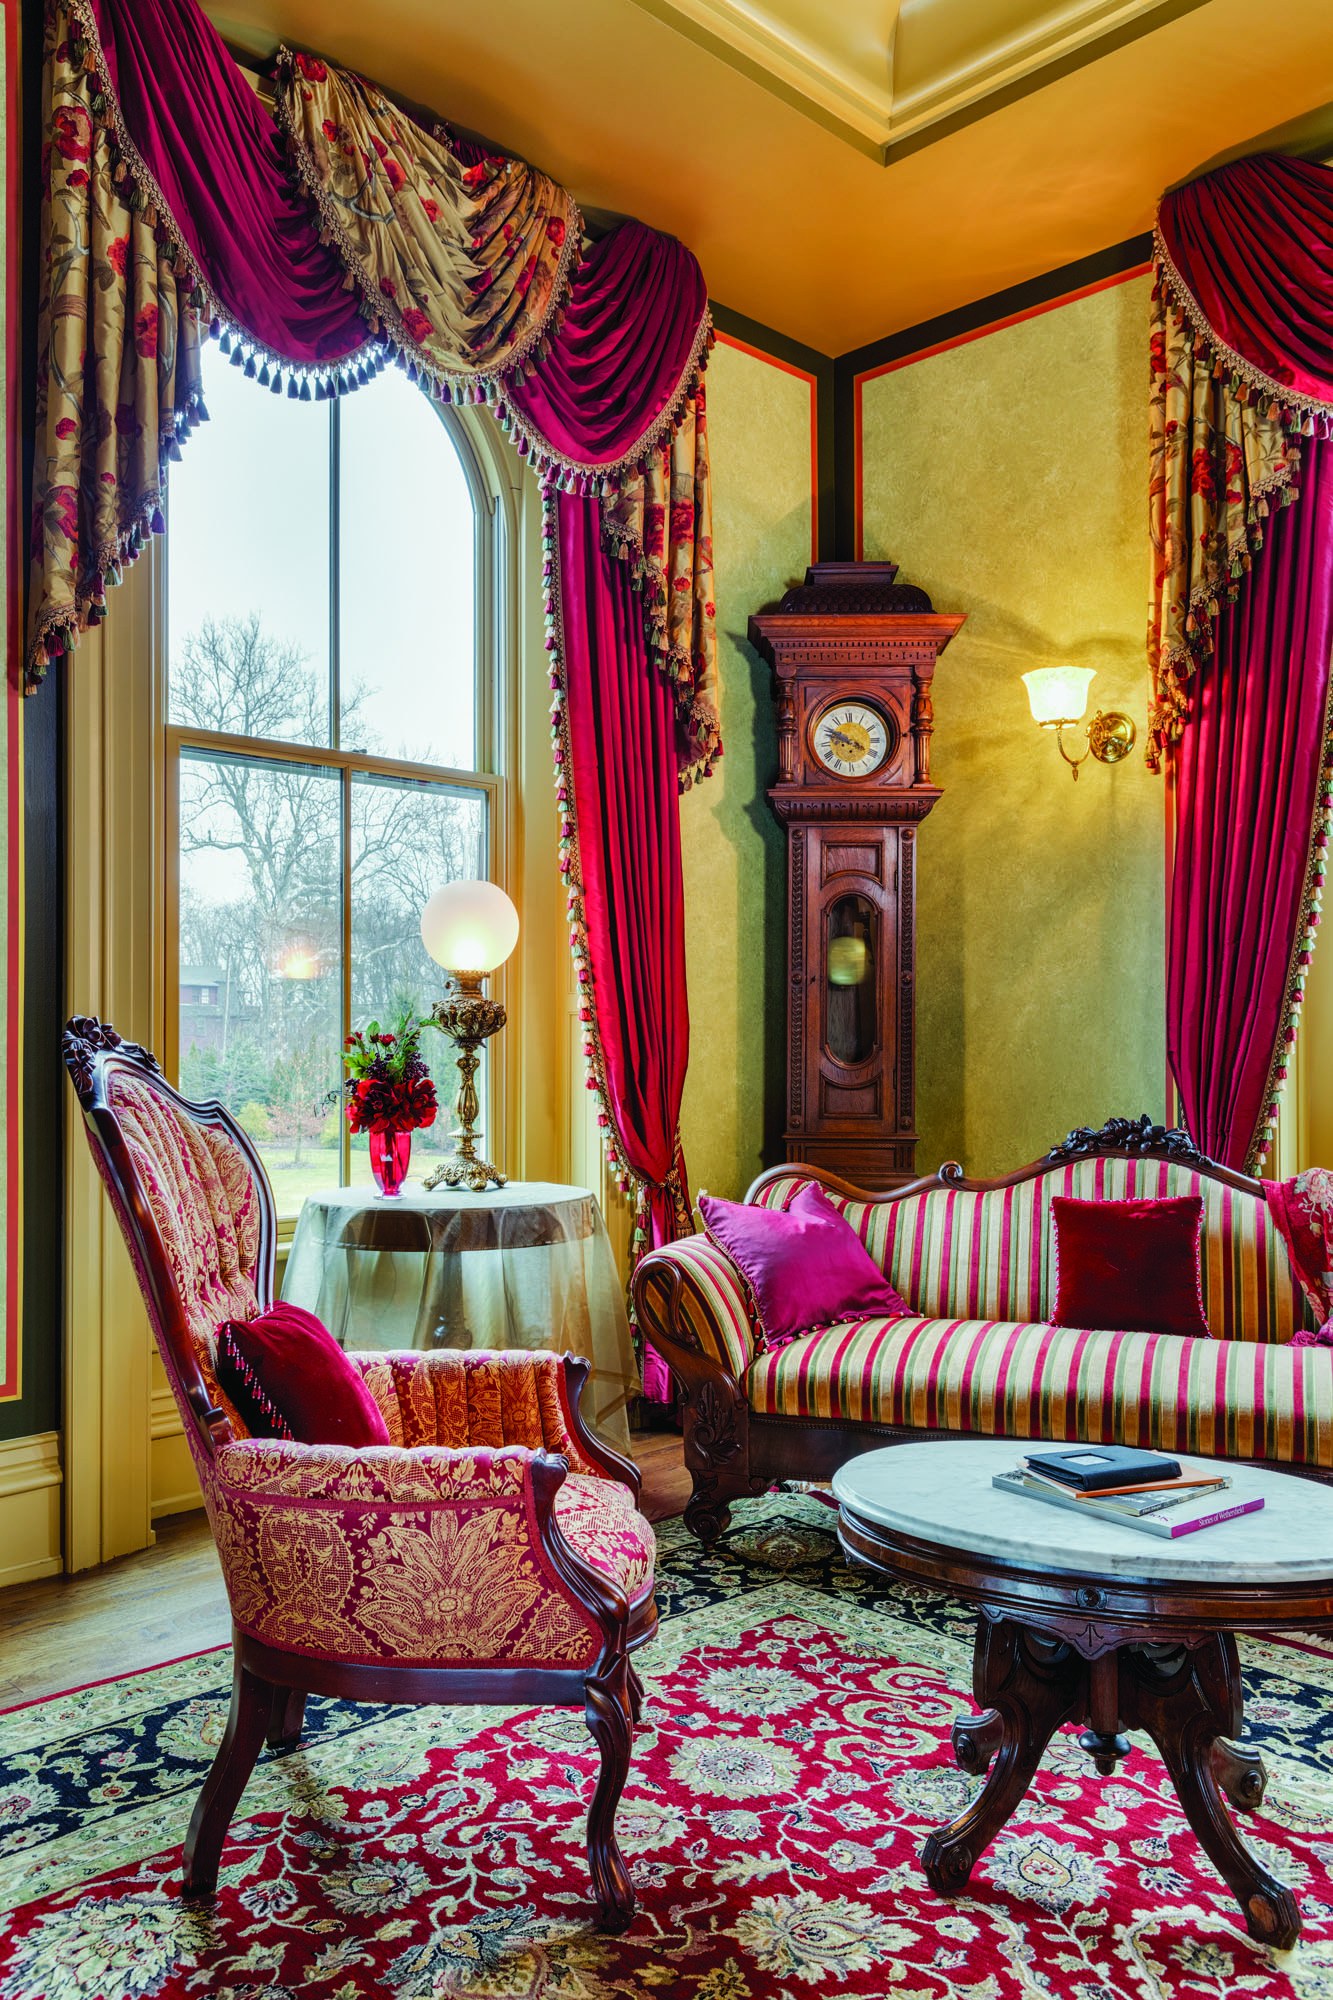 The Parlor is furnished with Renaissance Revival antiques.